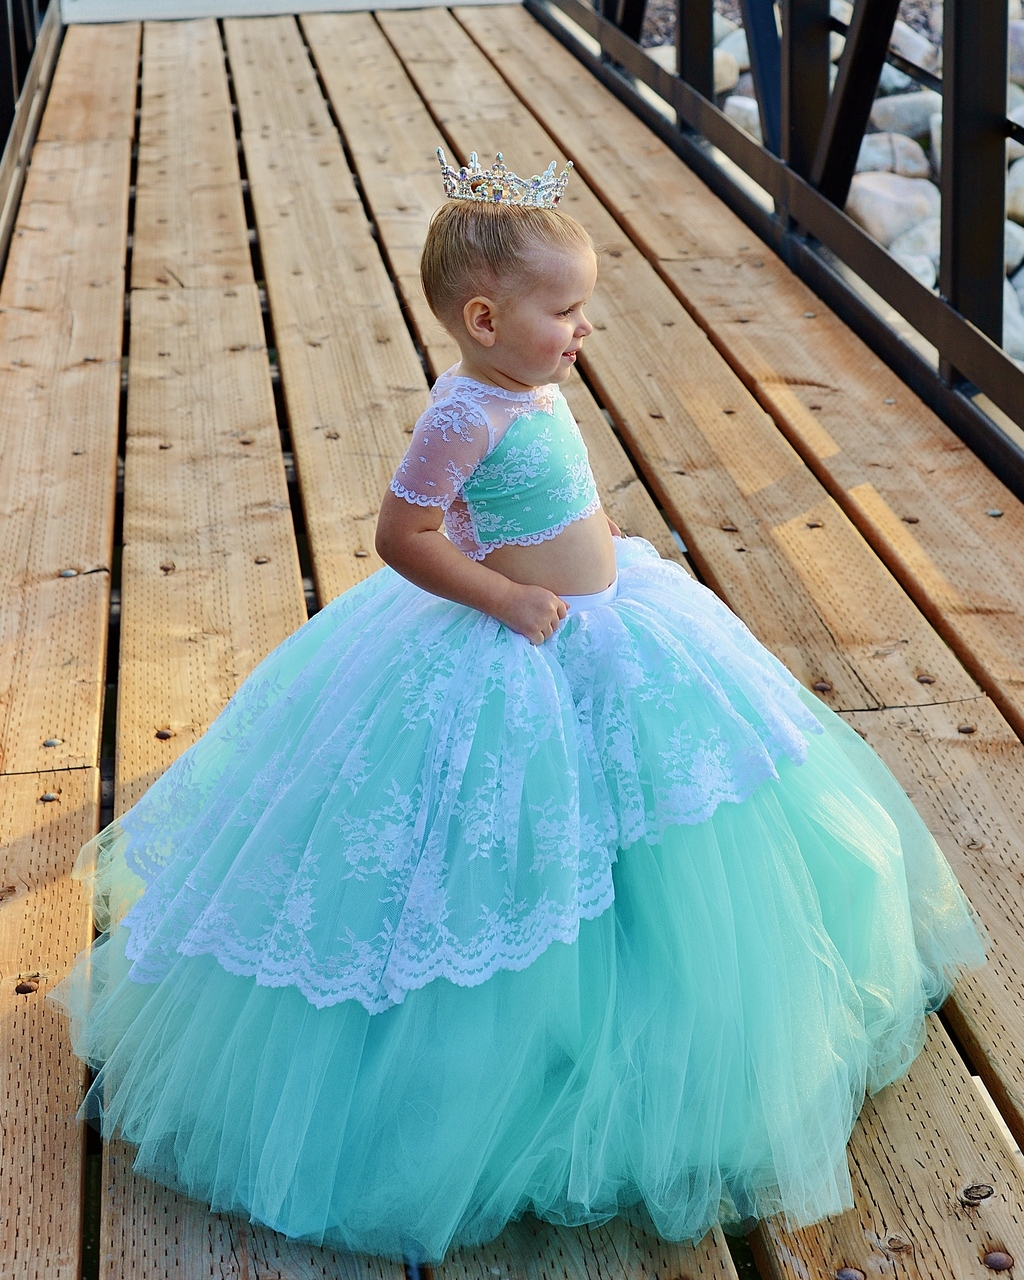 Lavender's Lavish Formal Skirt Sizes 2T to 14 Kids PDF Pattern